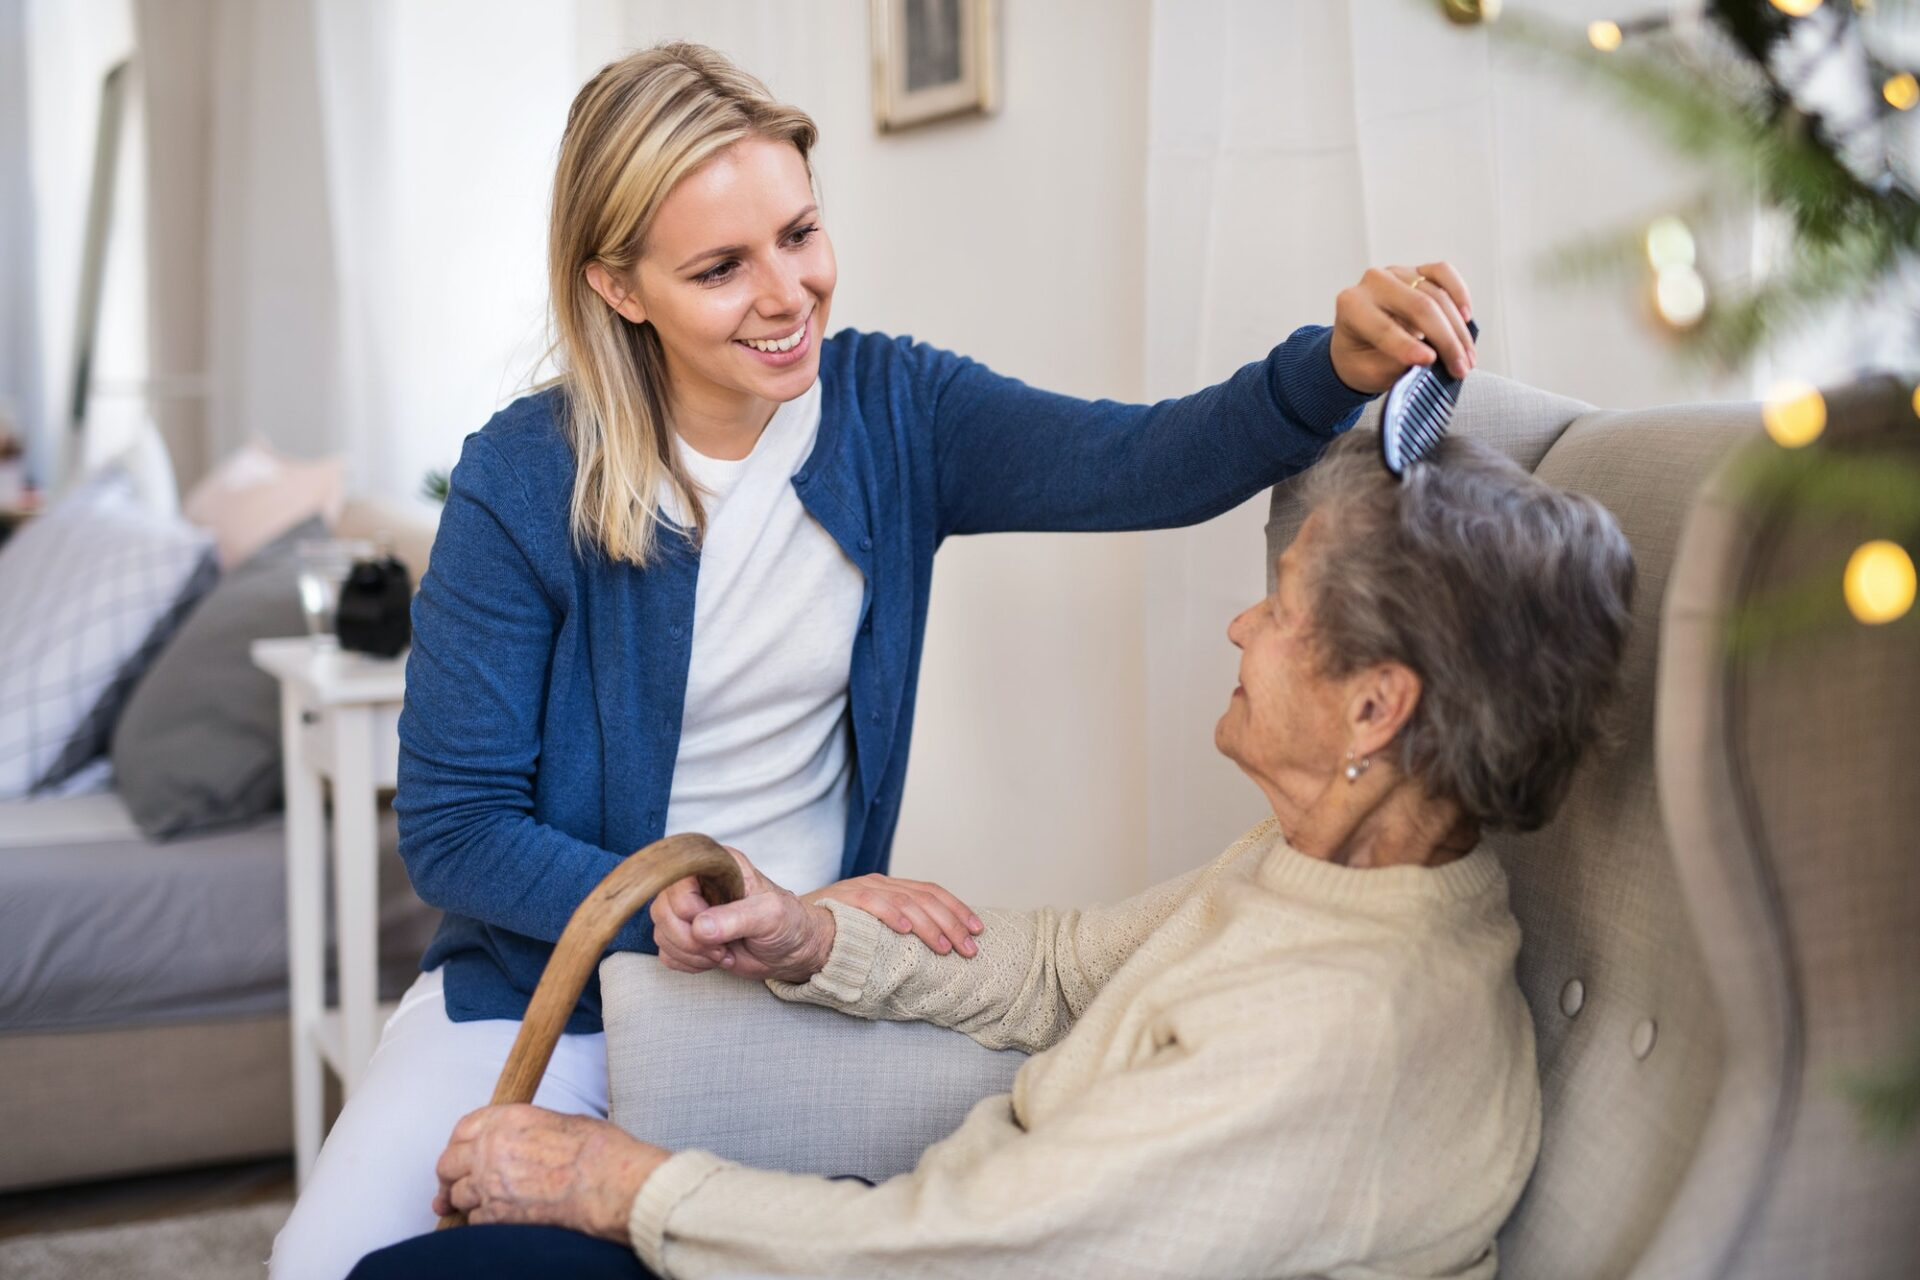 A health visitor combing hair of senior woman at home at Christmas time.